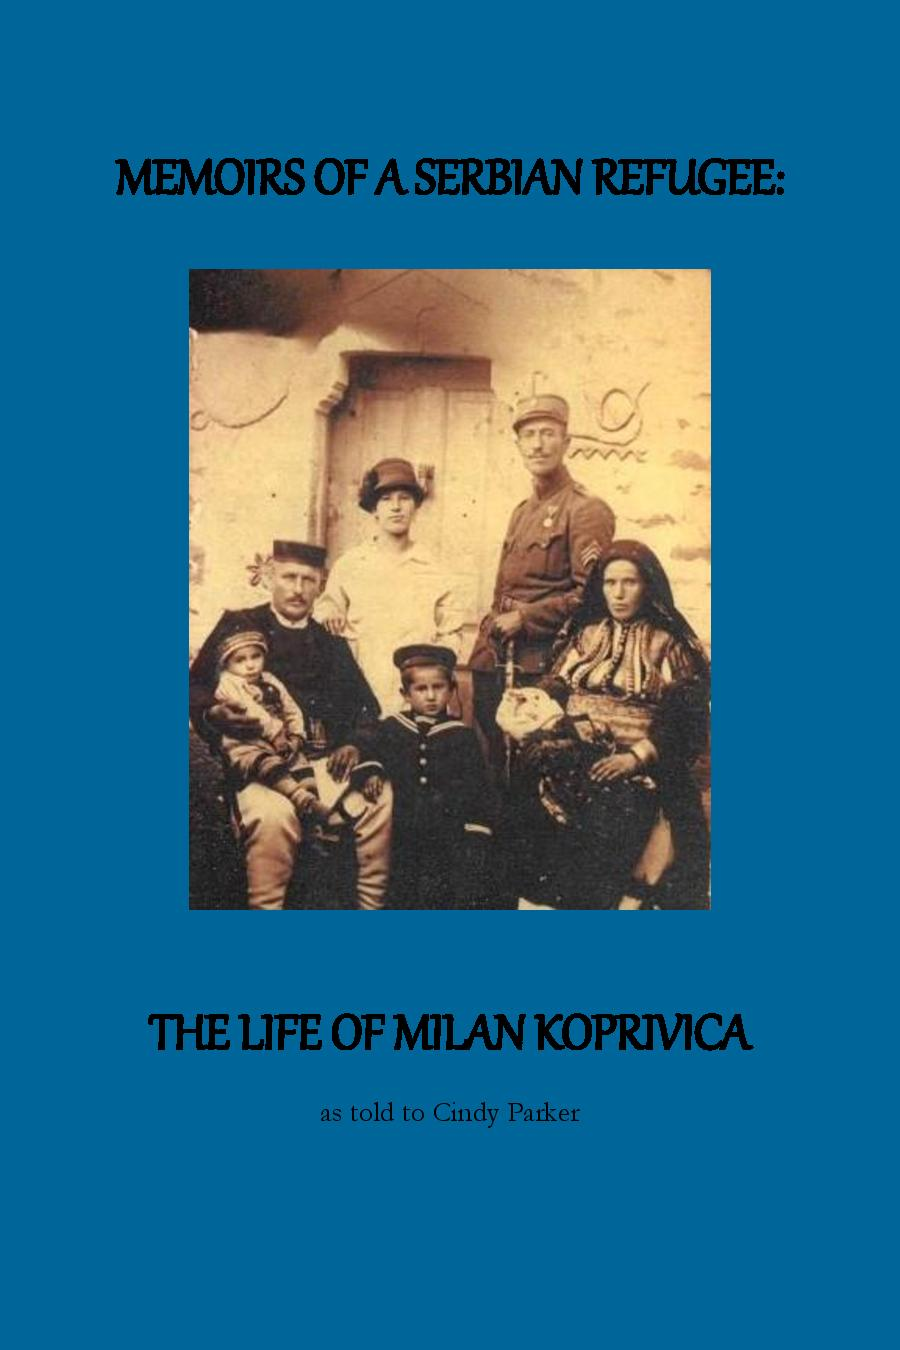 new books are in stock - This book is the life story of our beloved Djedo, Milan Koprivica (Fr. Dusan's father), an ethnic Serb who was born in Macedonia and fled with his family to Serbia after Yugoslavia fell under Nazi Occupation in World War II.To order please click on the button below. All proceeds will go to the church building fund.